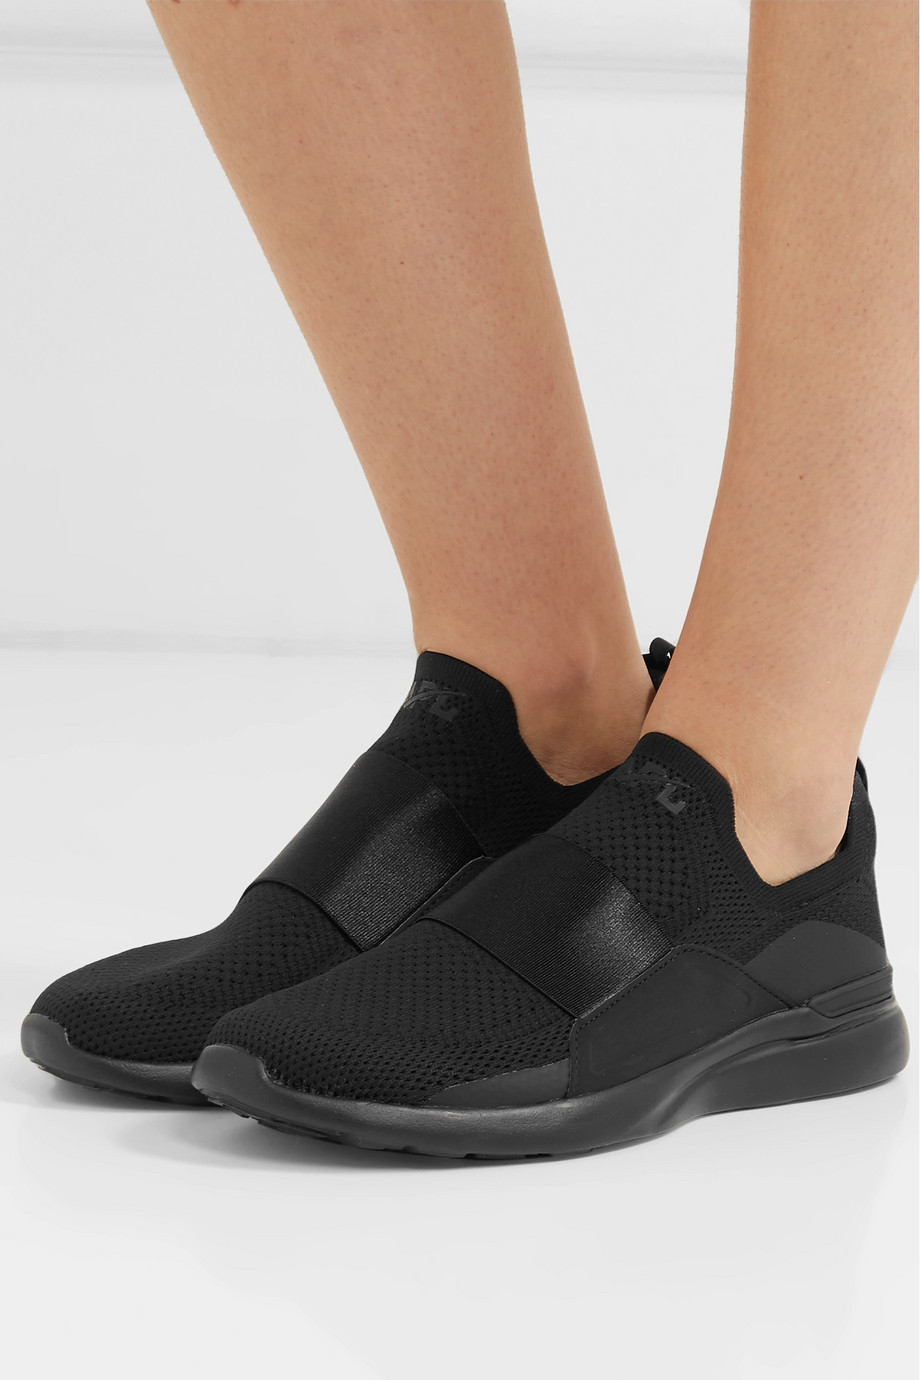 APL Athletic Propulsion Labs TechLoom Bliss Sneakers aus Mesh and Neopren